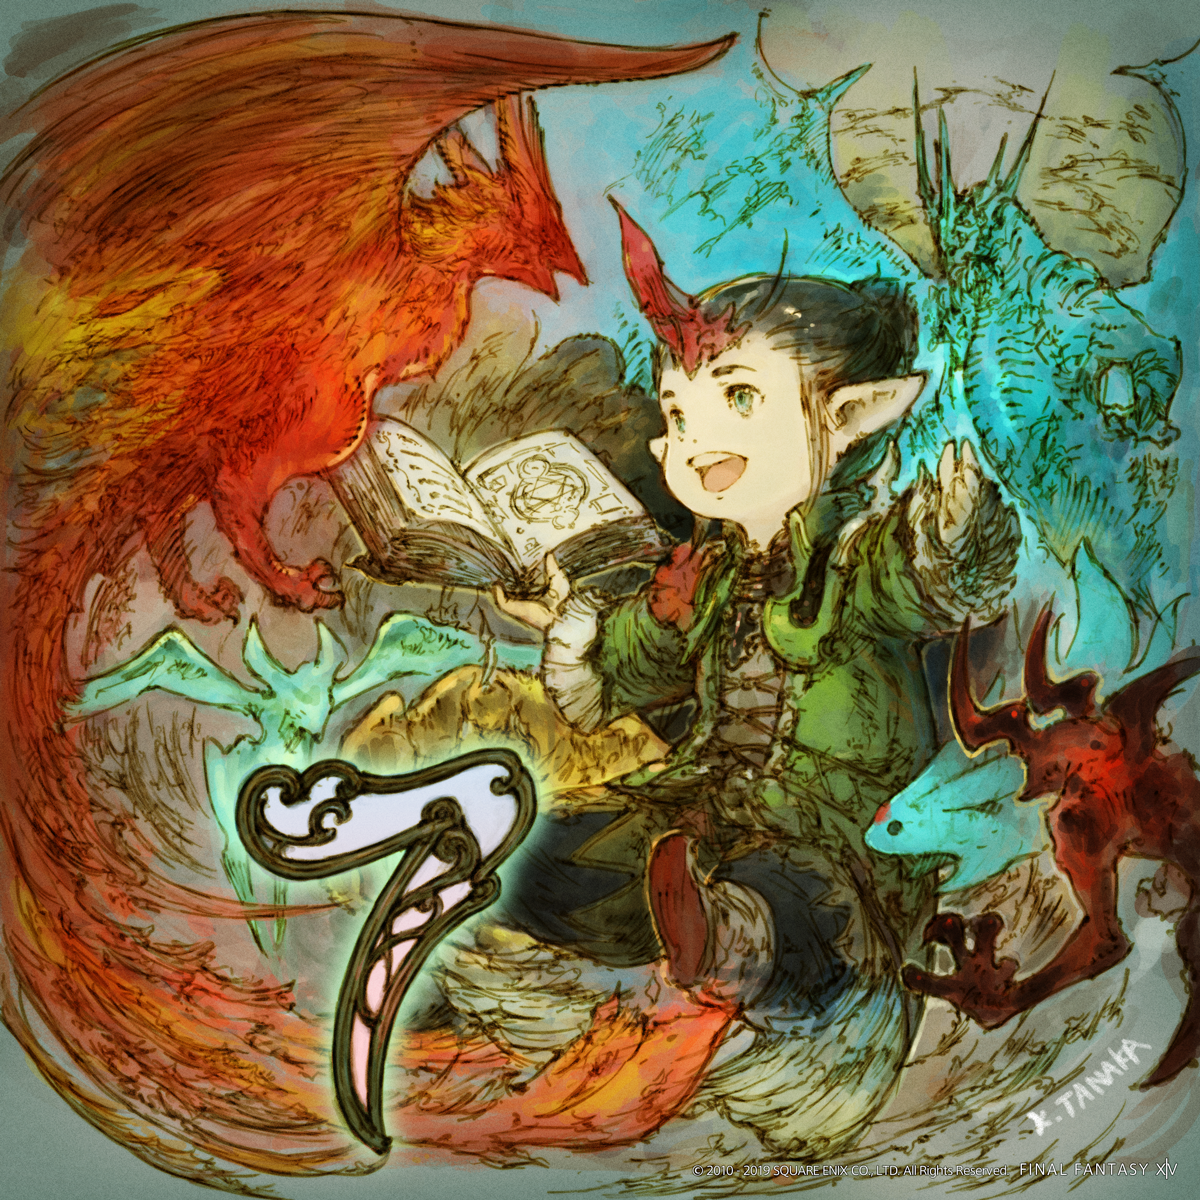 Illustrated Shadowbringers Countdown - 7 Days Left | FINAL FANTASY